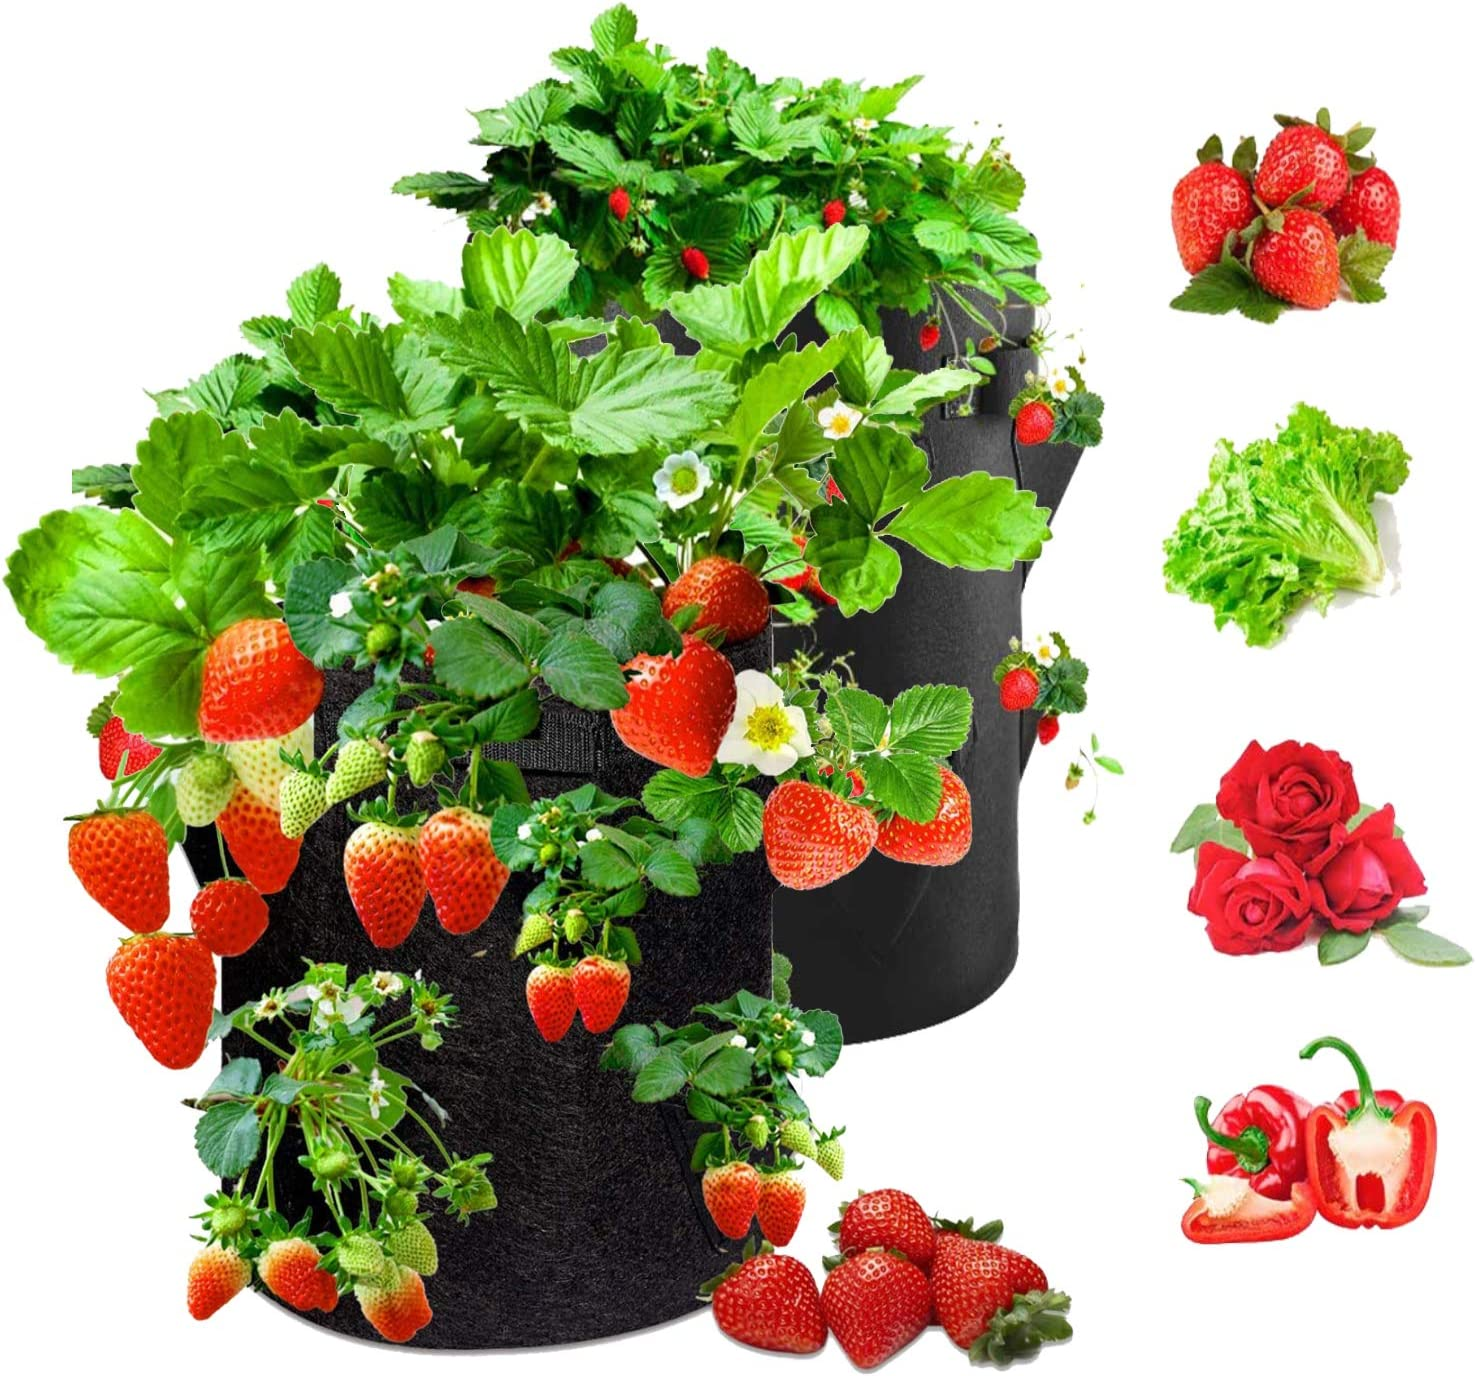 Strawberry Grow Bags 2-Pack 10 Gallon Strawberry Planter Strawberry and Herb Grow Bag with 6 Side Grow Pockets